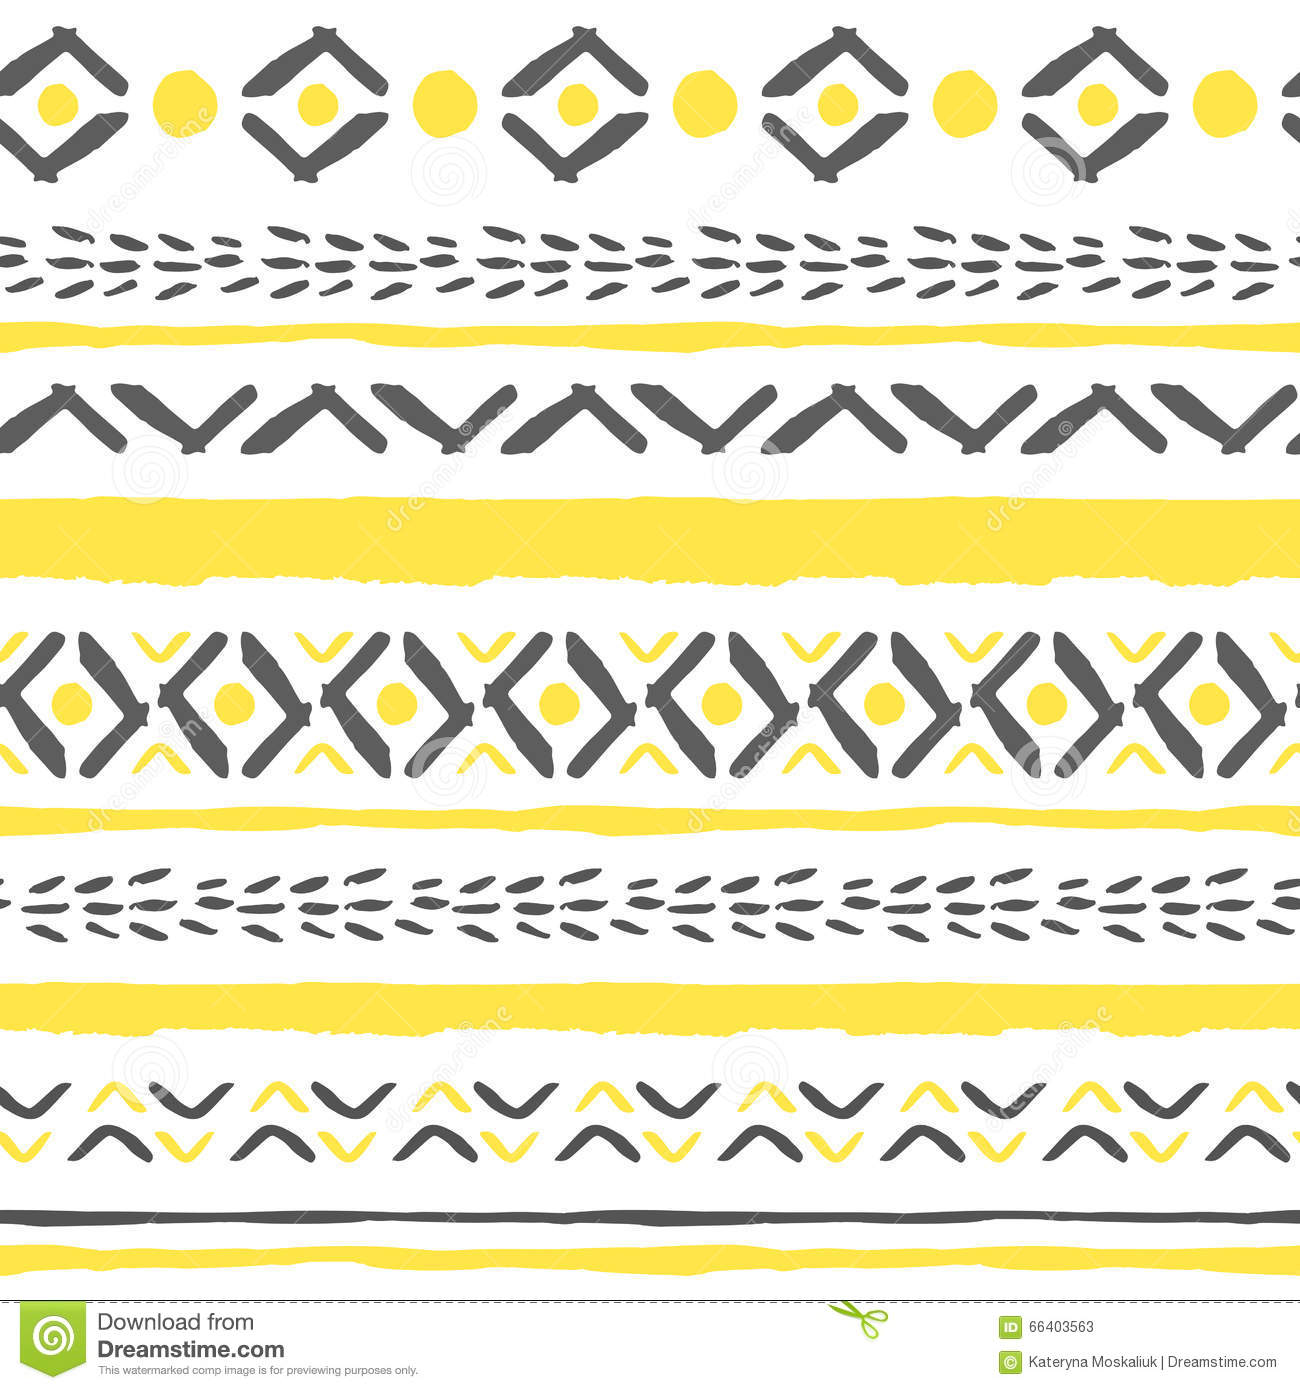 Vector hand drawn tribal boho pattern.